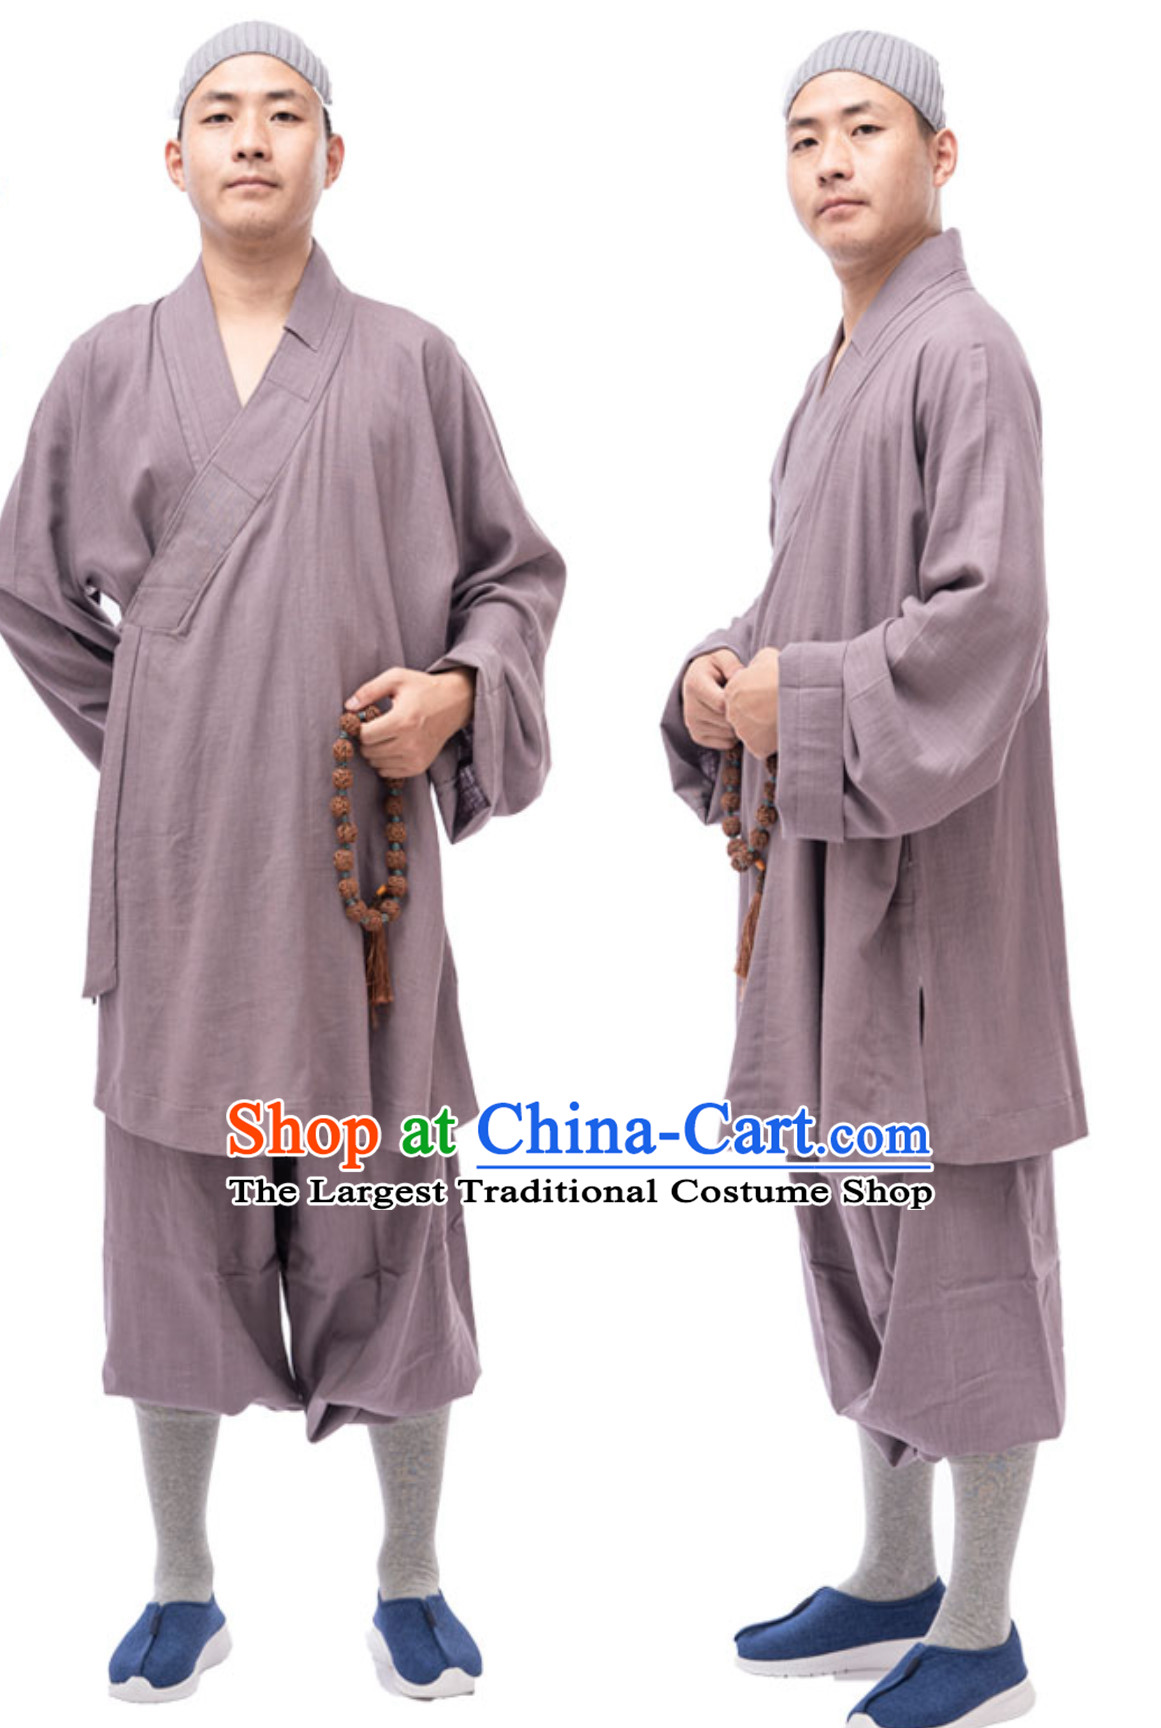 Ancient Chinese Style Monk Dresses Monk Garment for Men